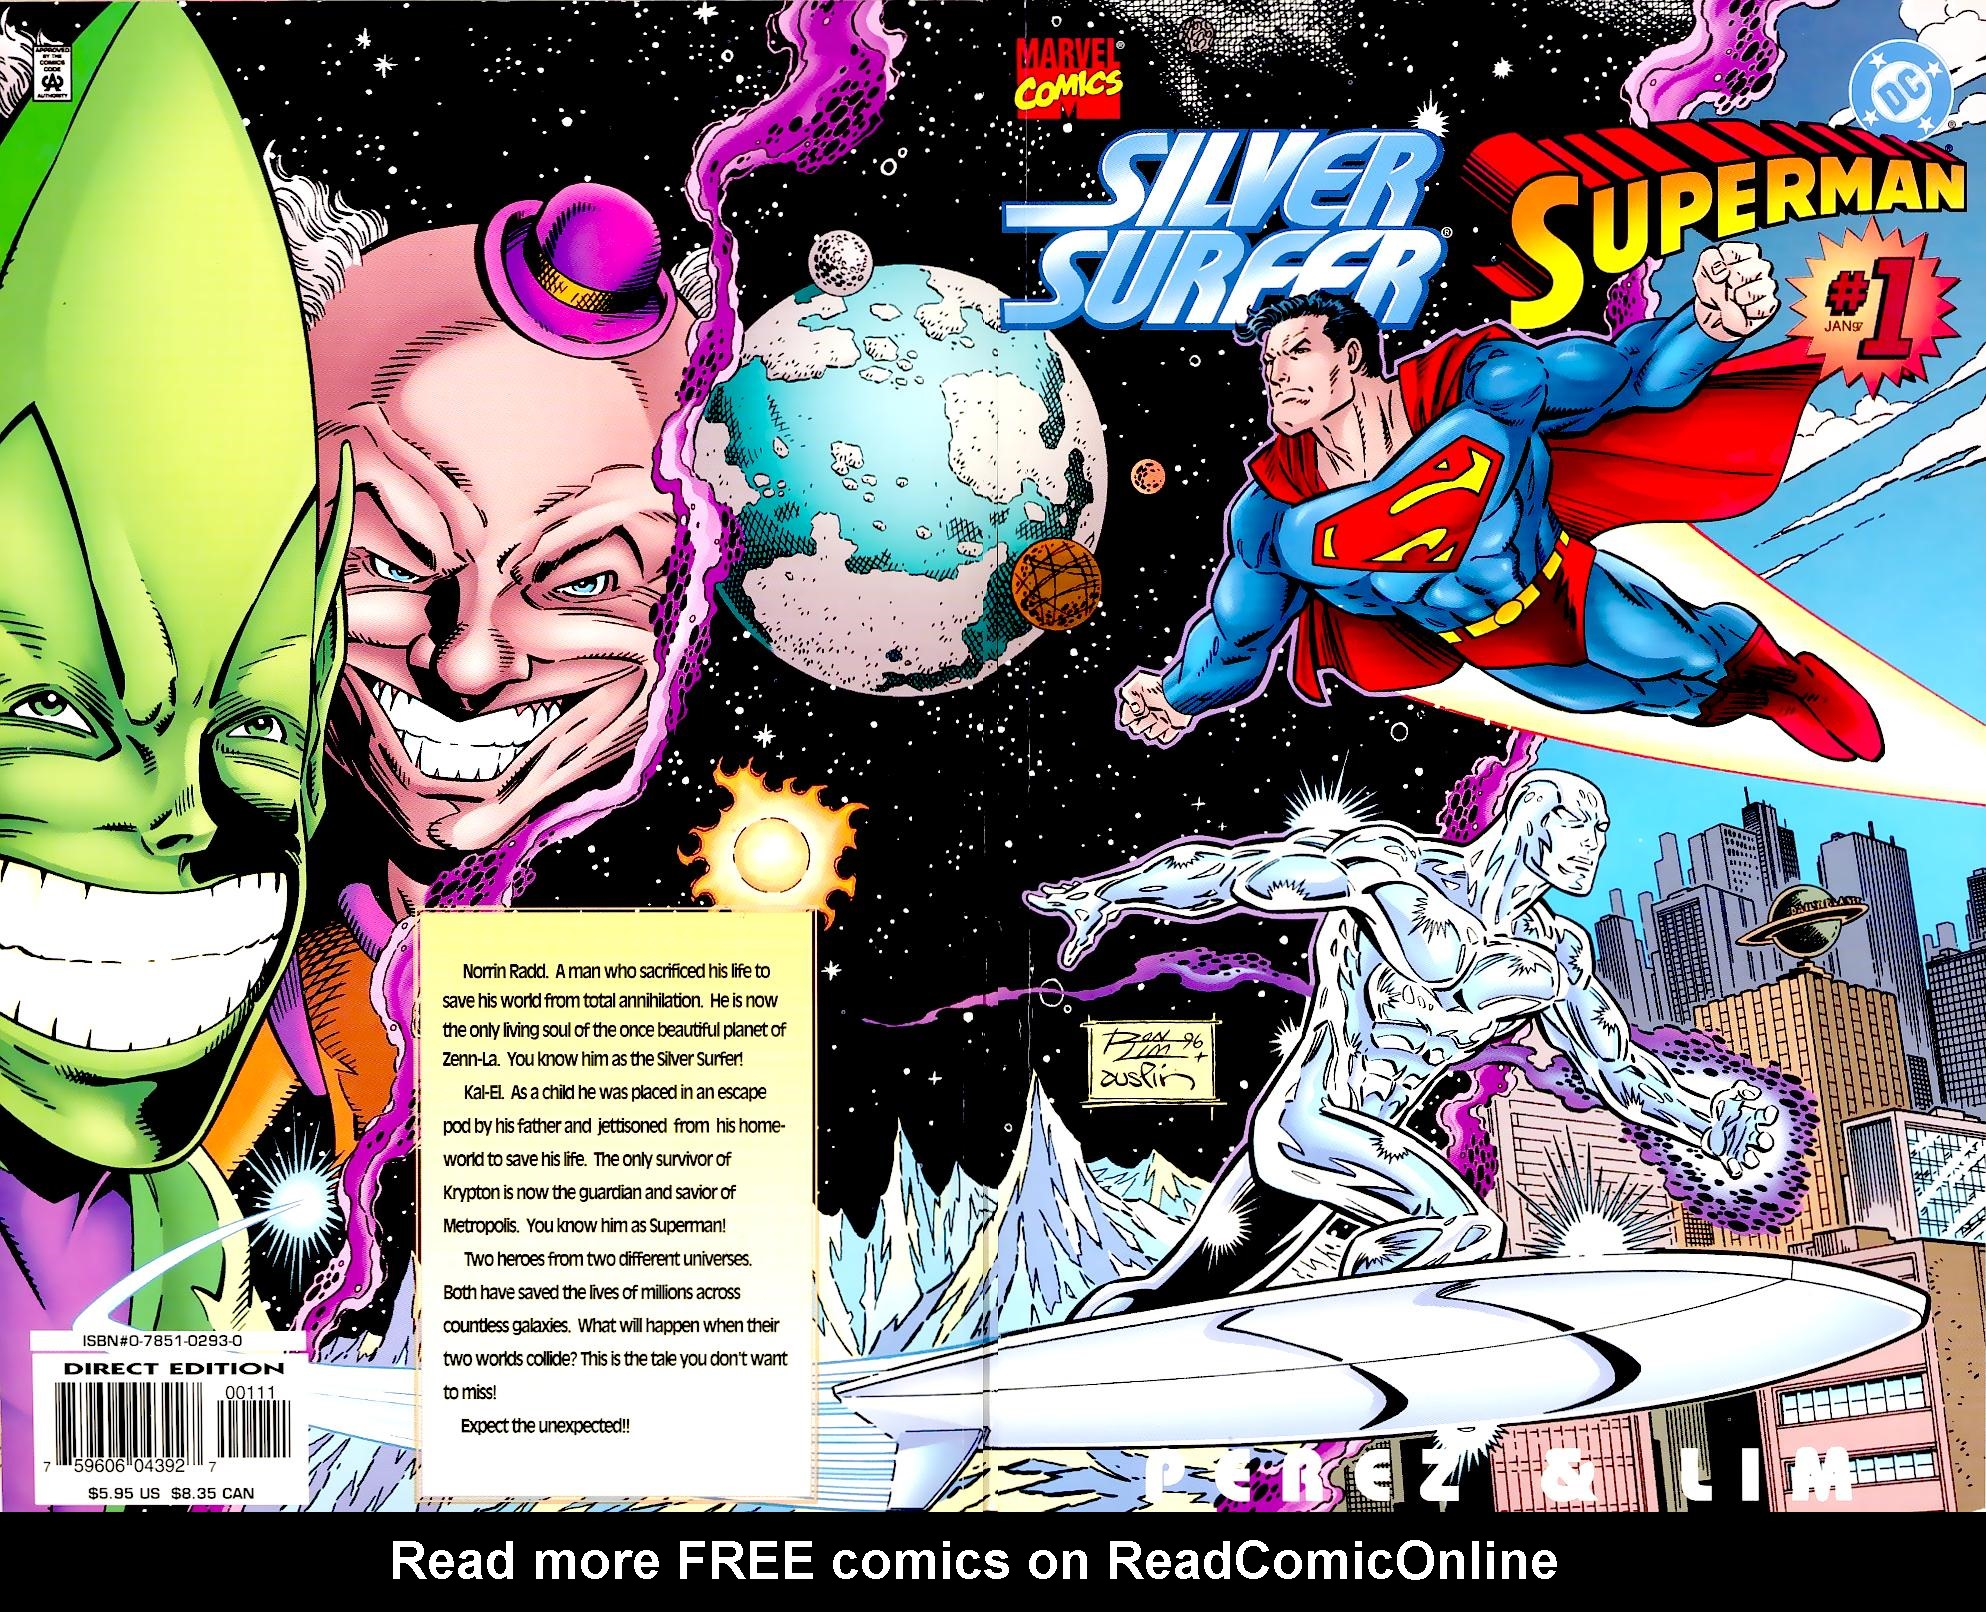 Read online Silver Surfer/Superman comic -  Issue # Full - 1